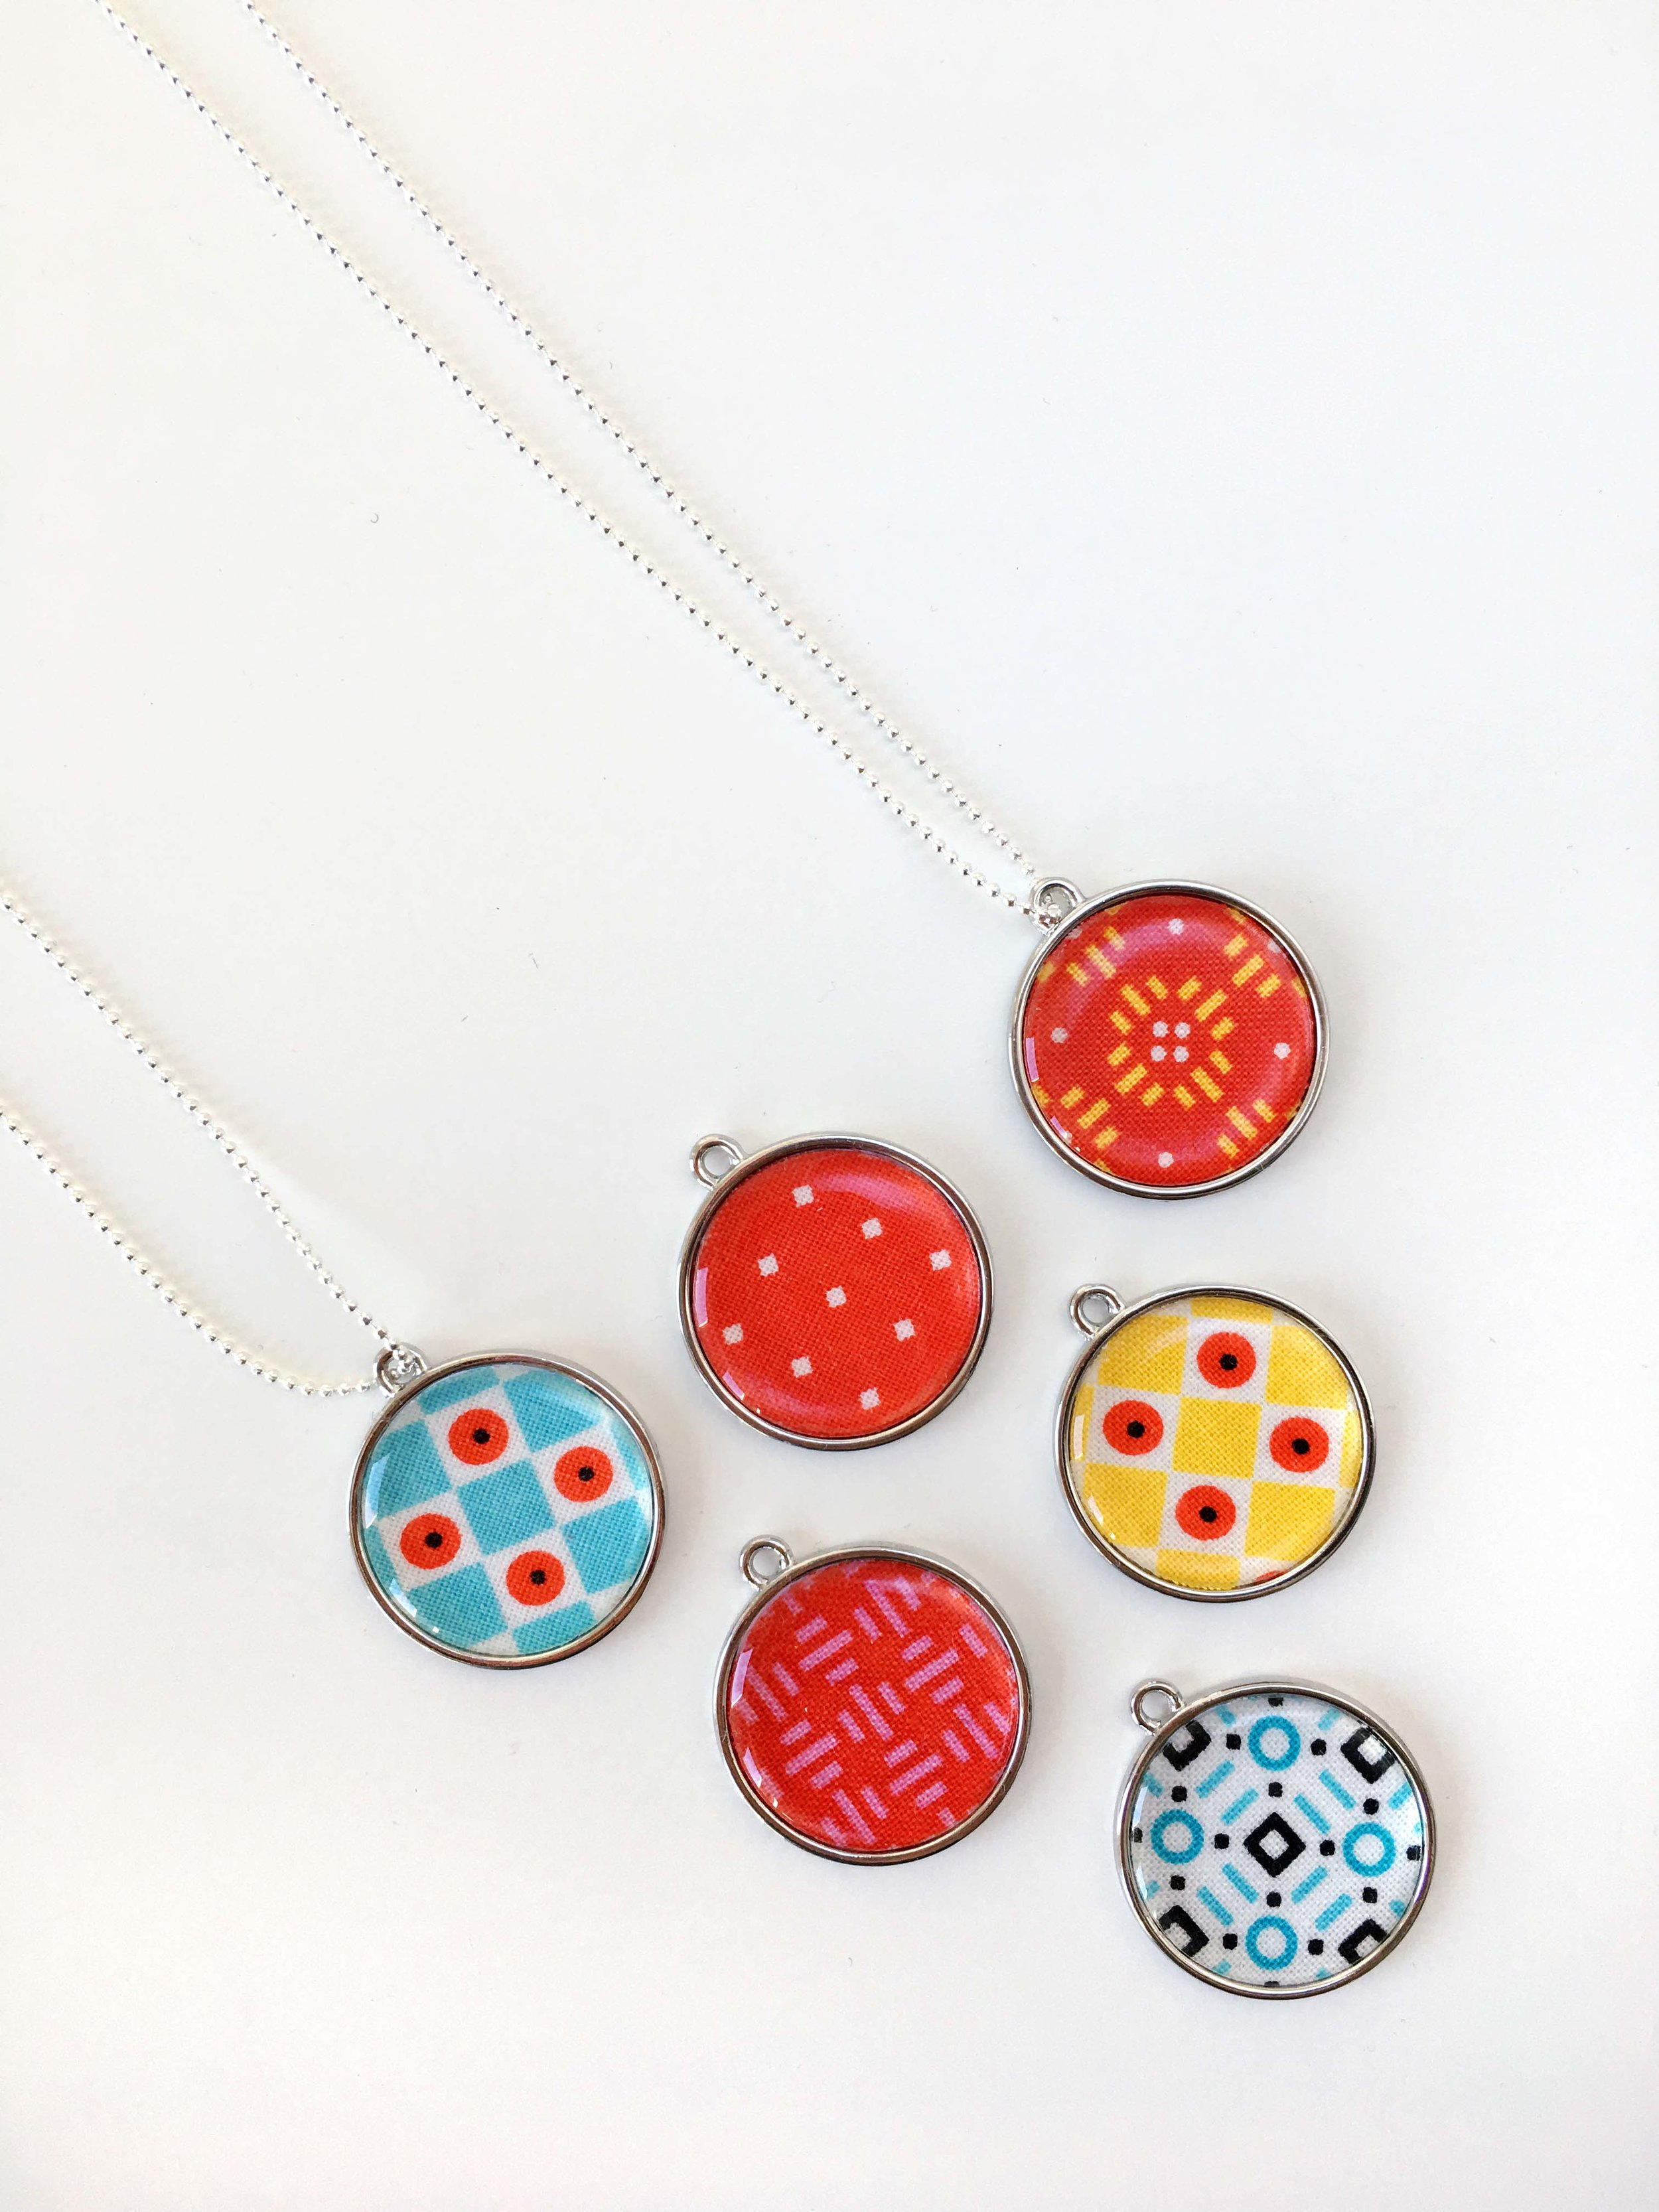 Vol2-necklaces-002.jpg